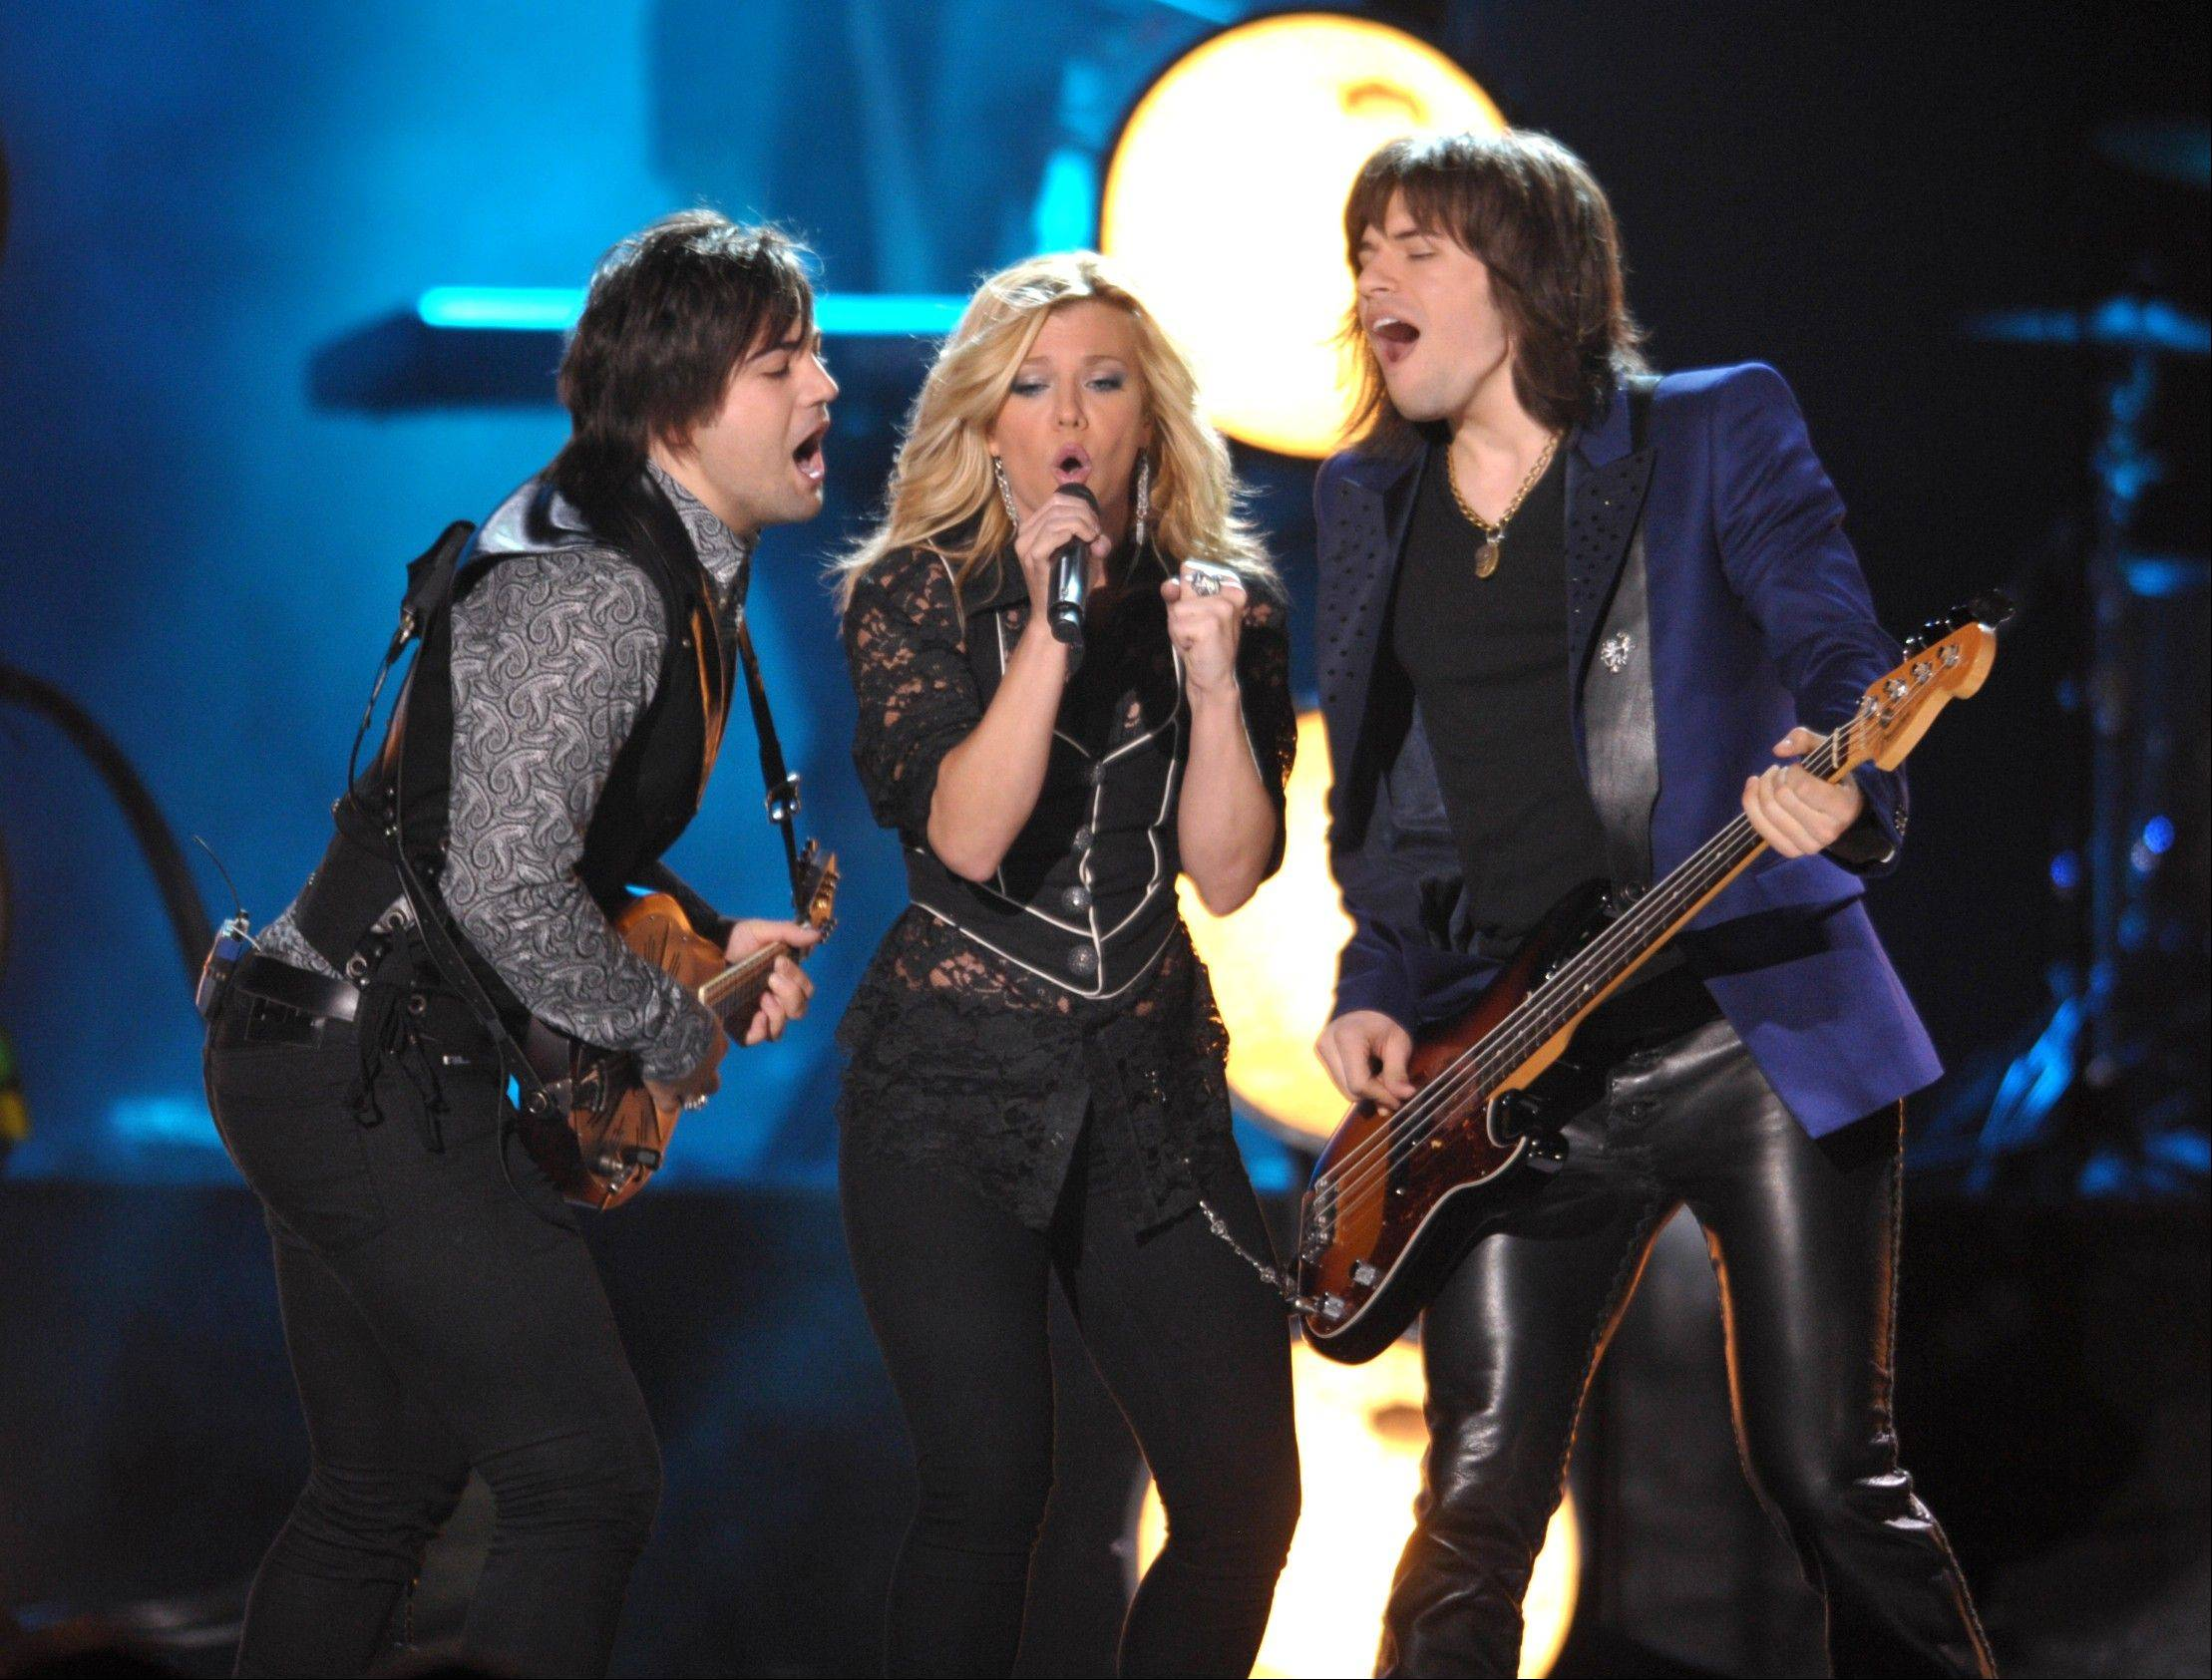 Neil Perry, Kimberly Perry and Reid Perry of The Band Perry perform at the 2012 CMT Music Awards in Nashville, Tenn. They'll be performing at the Illinois State Fair on Aug. 13.